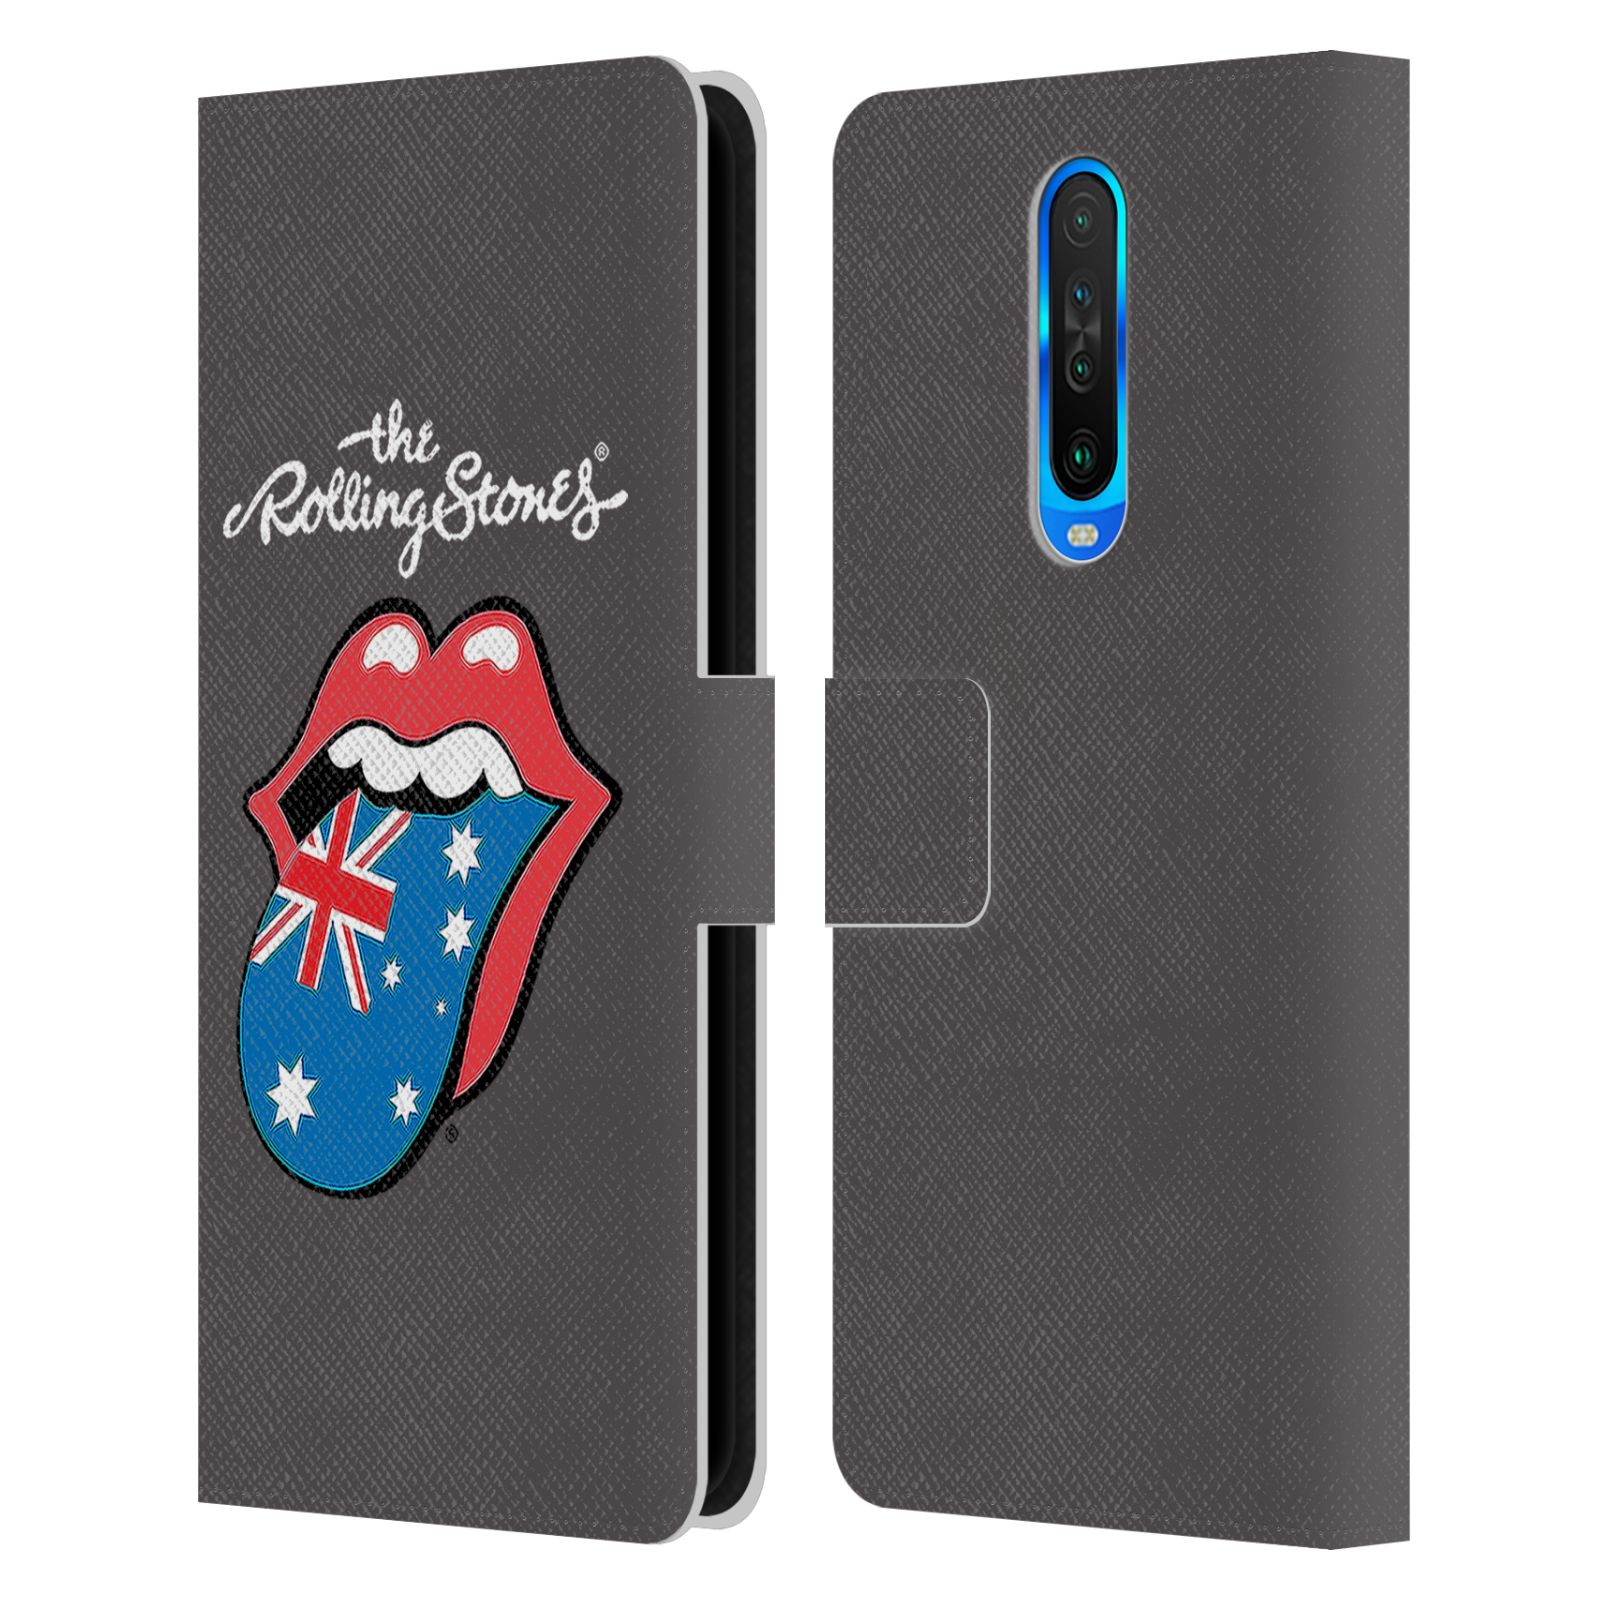 Official The Rolling Stones International Licks 1 Australia Leather Book Wallet Case For Xiaomi Redmi K30 / 5G